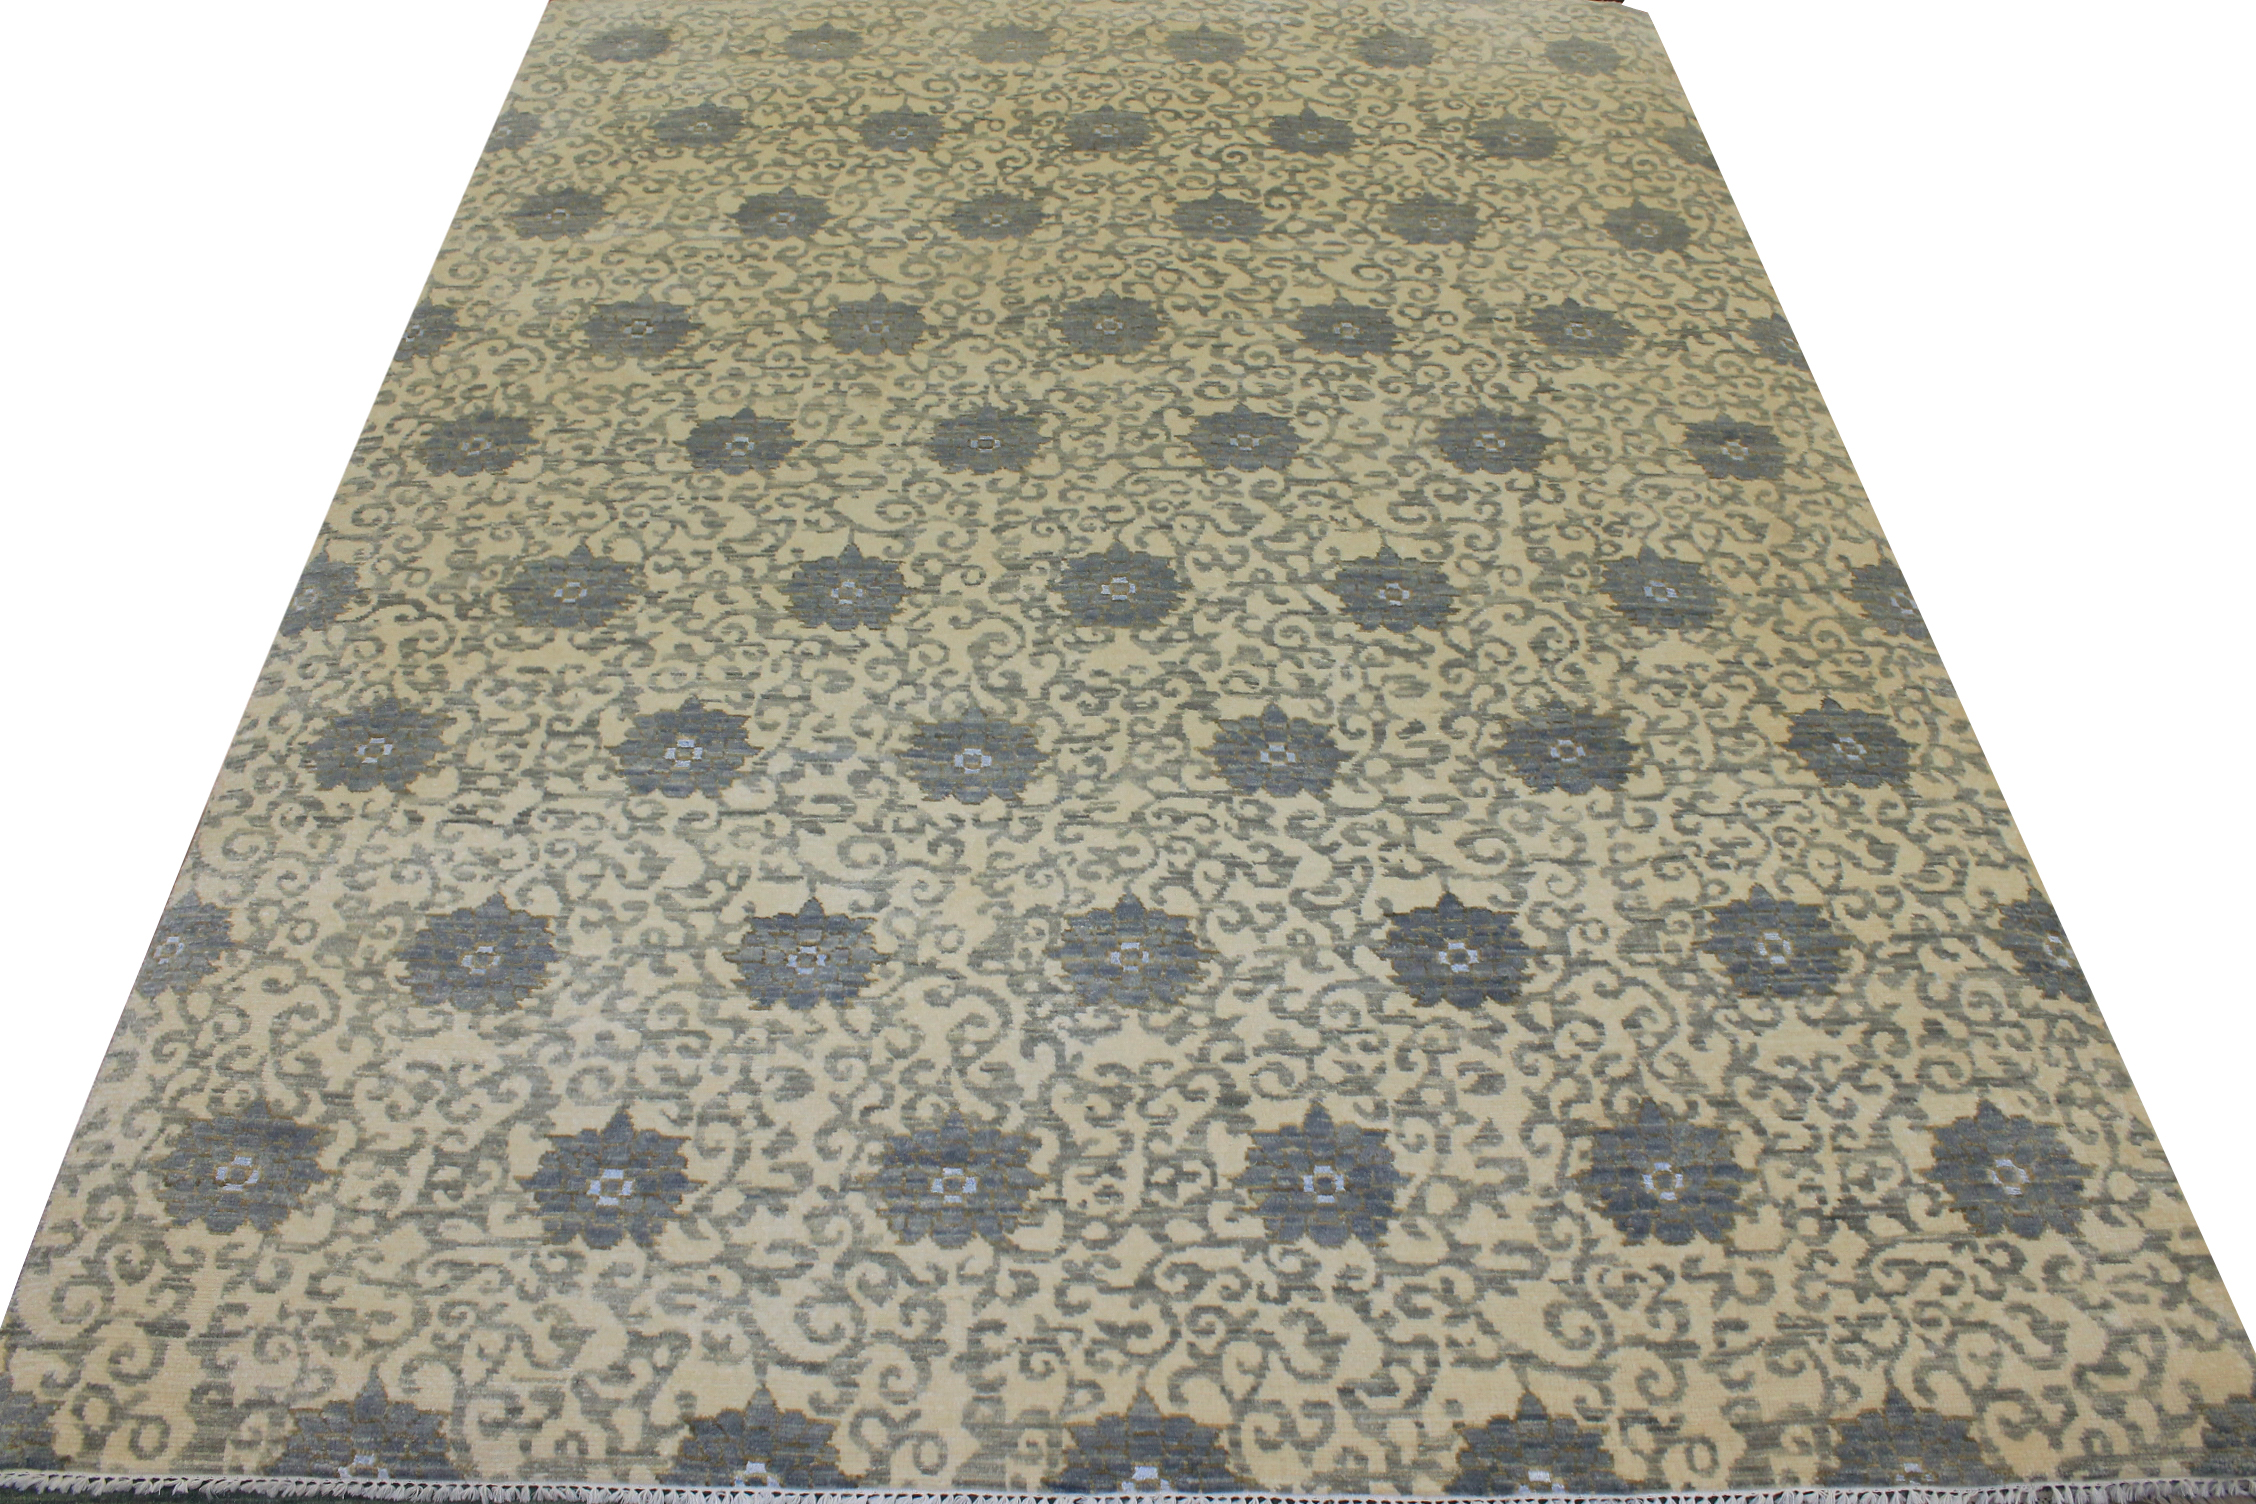 9x12 Contemporary Hand Knotted Wool Area Rug - MR18085